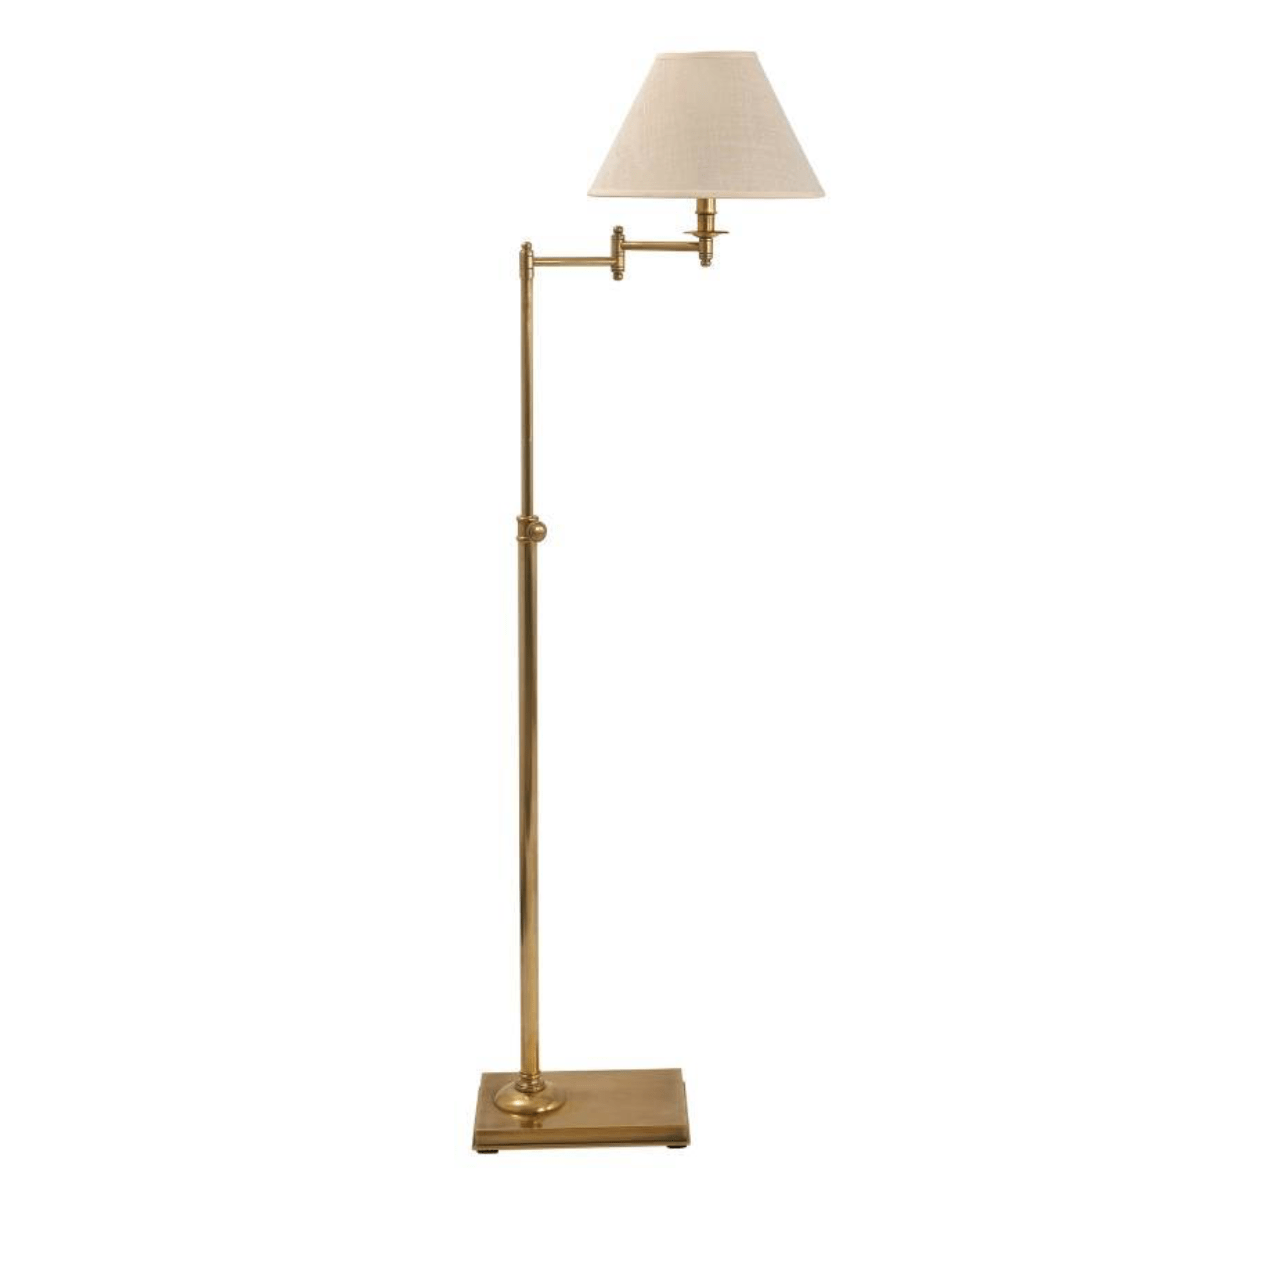 Swing Arm Floor Lamp Urban Lighting